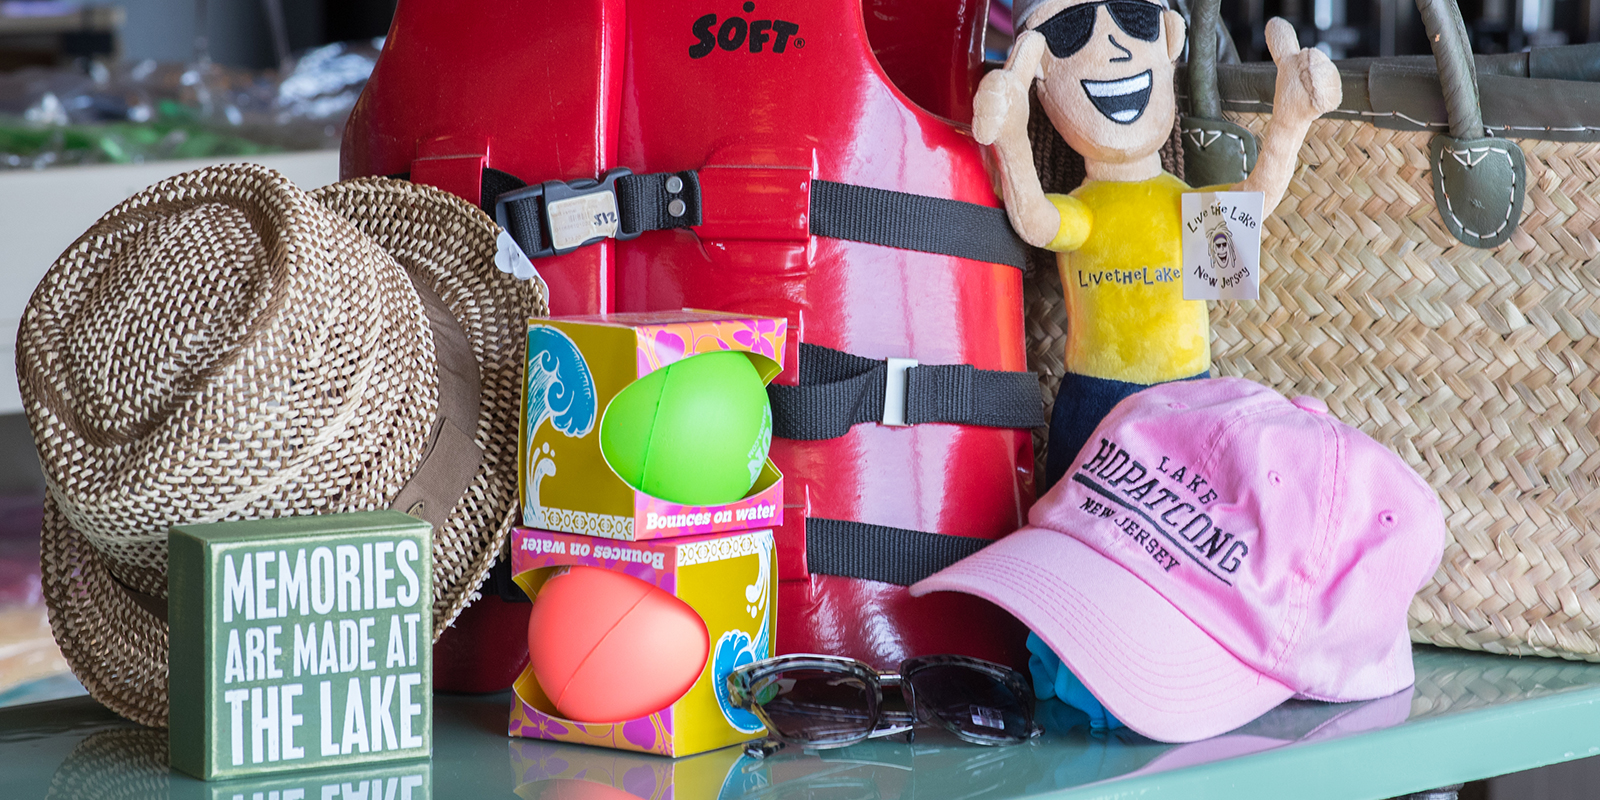 Various items including a life jacket, toys, and hat